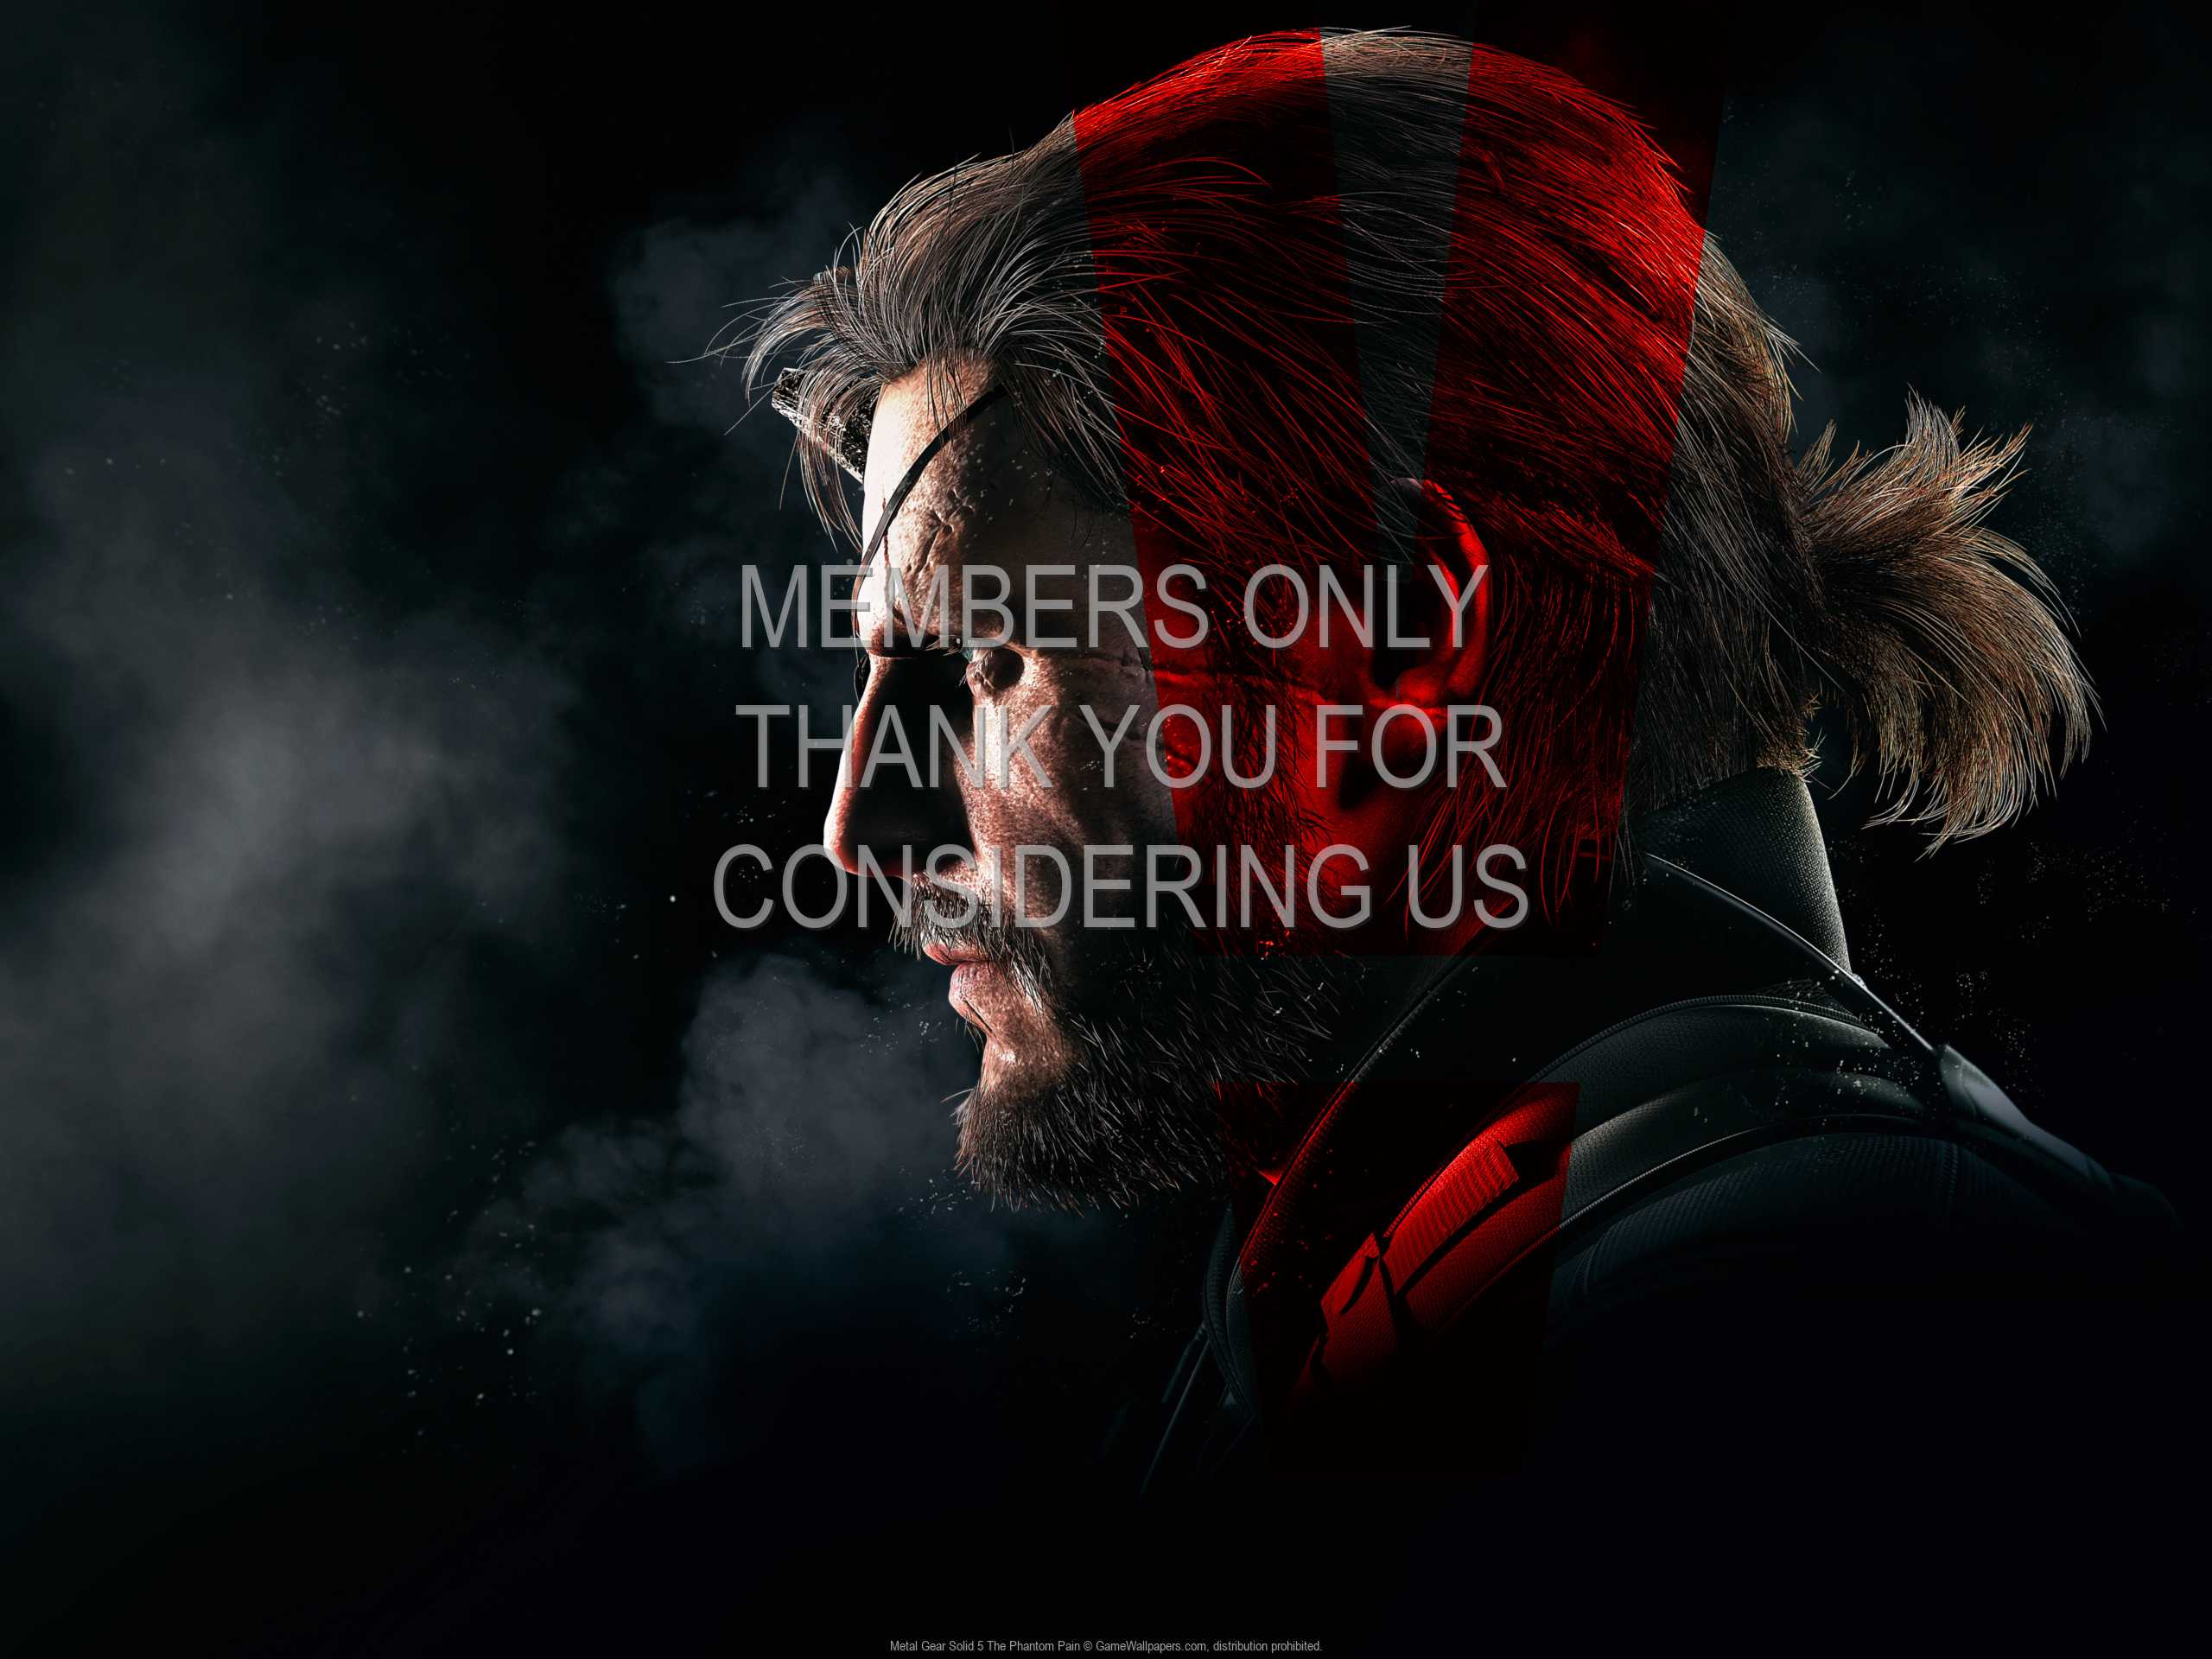 Metal Gear Solid 5: The Phantom Pain 1080p Horizontal Mobile wallpaper or background 01